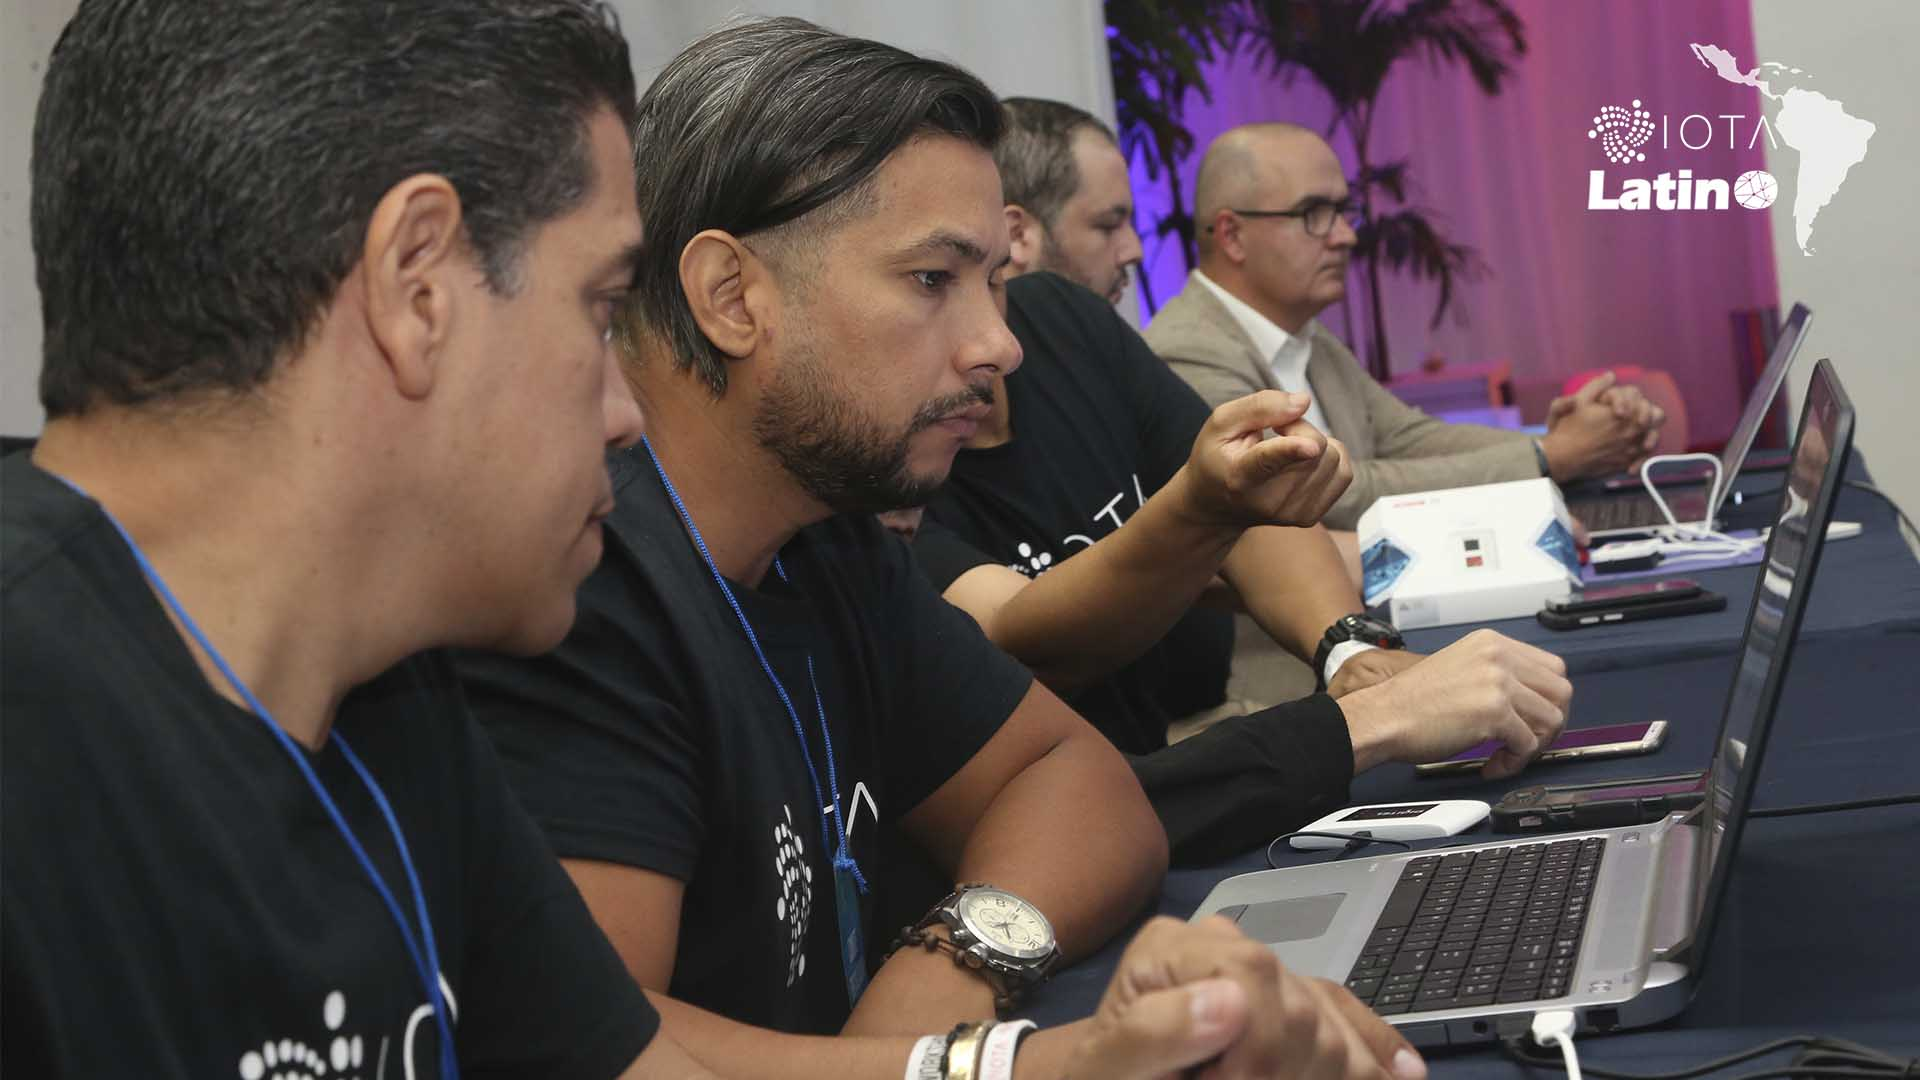 IOTA Latino - workshop